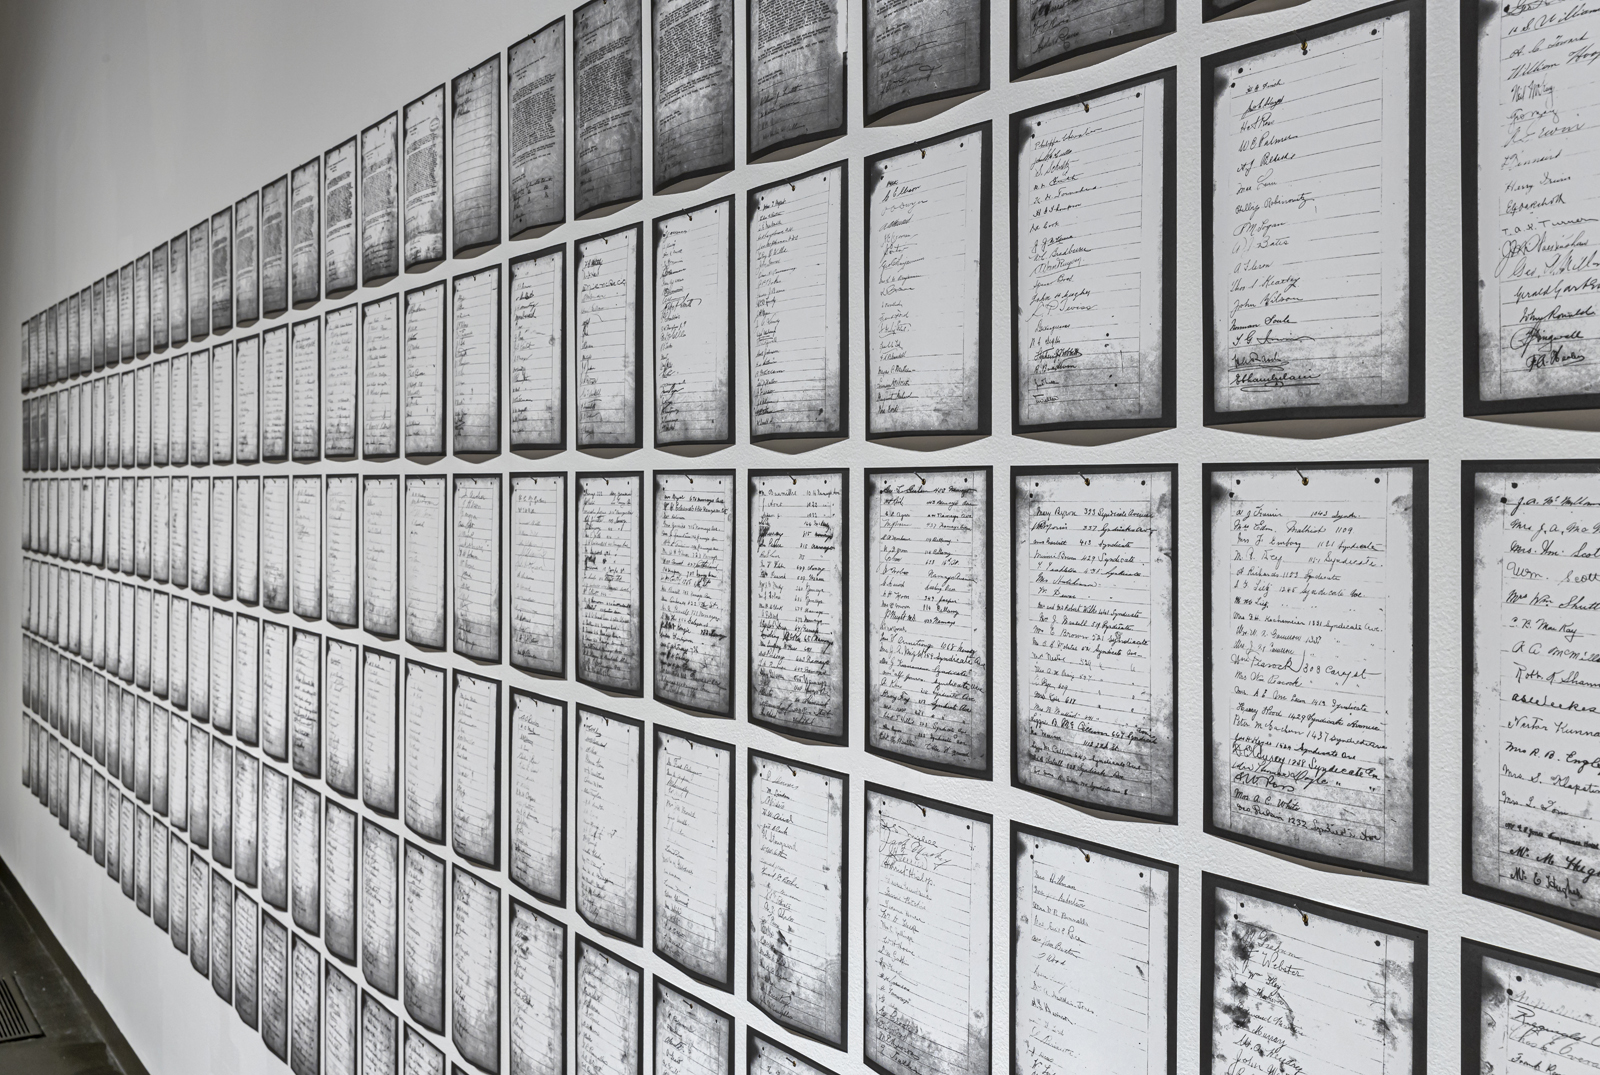 Installation view of Deanna Bowen's installation of a photocopied petition arranged in long rows on a gallery wall